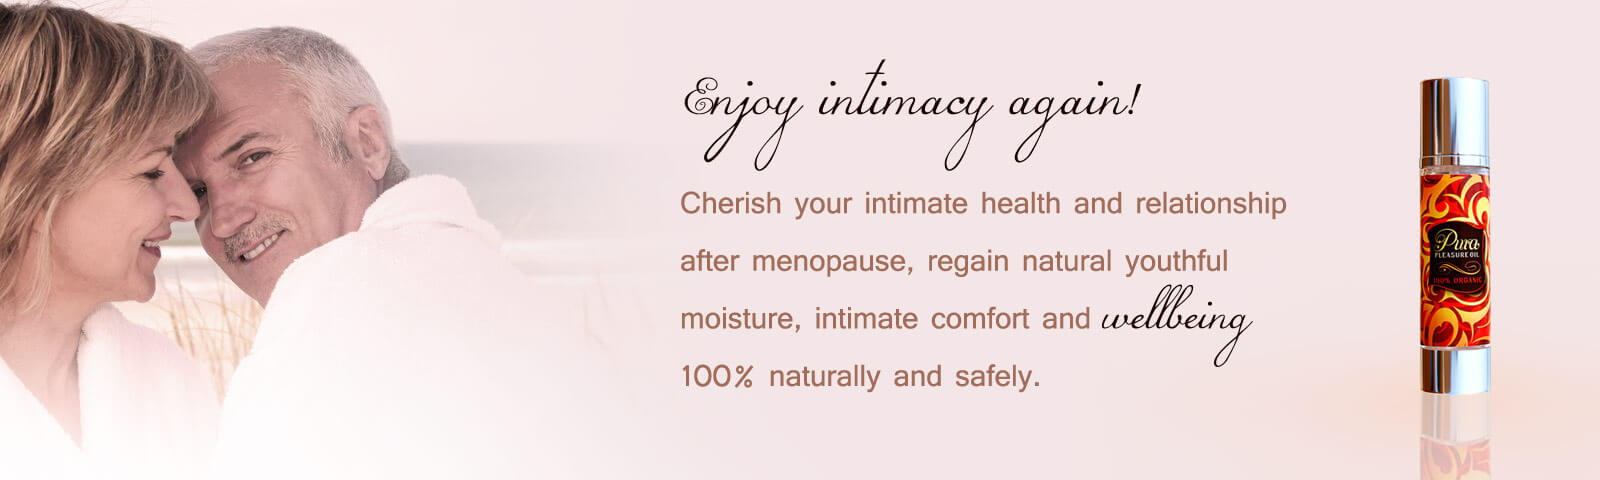 Enjoy intimacy again!